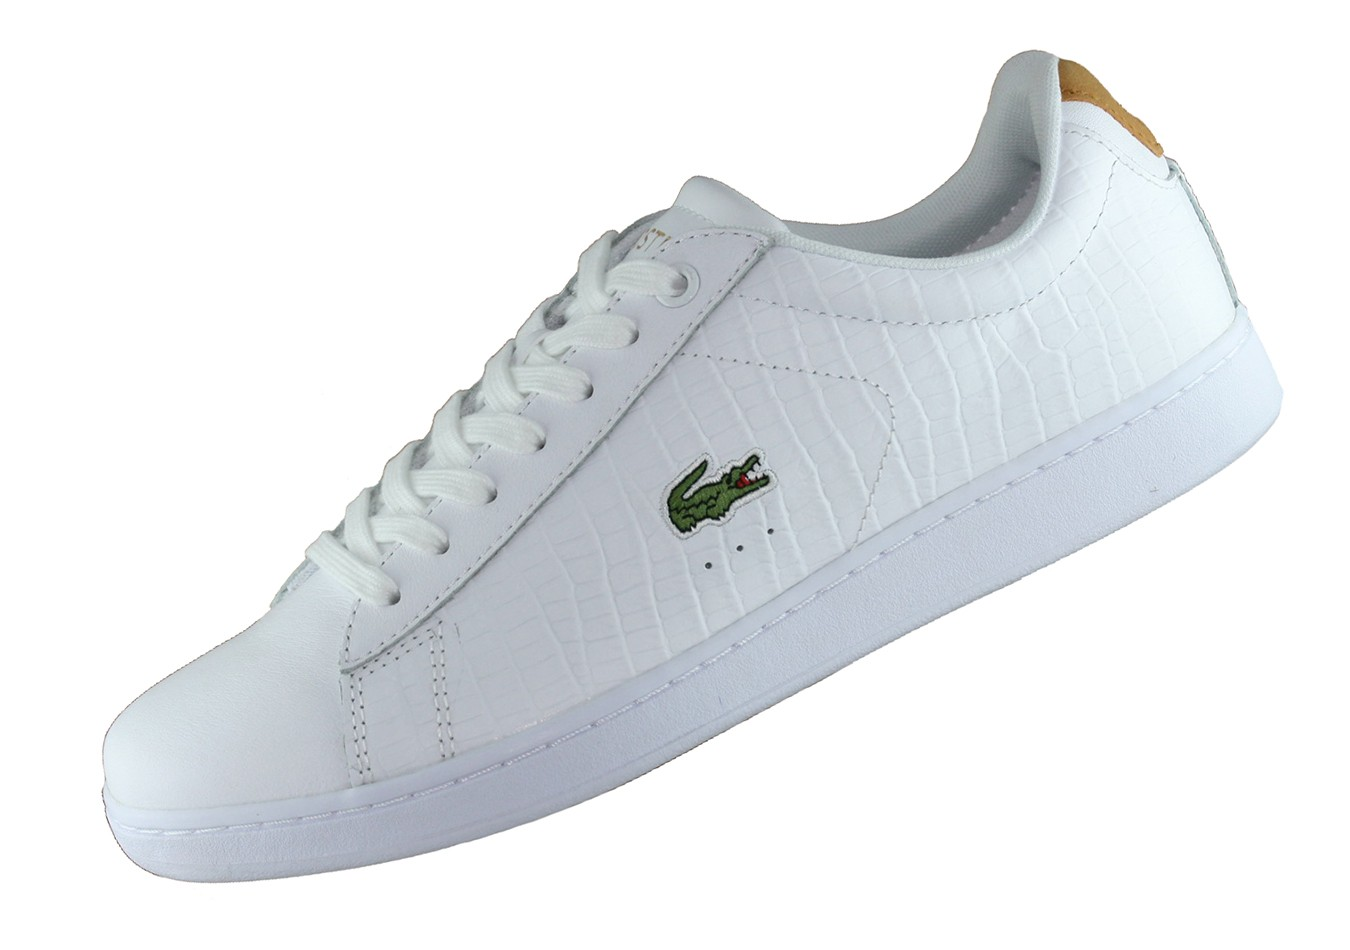 official photos 244a4 570f2 Lacoste Carnaby Evo G117 Weiss 733SPM1036291 Leder Sneaker